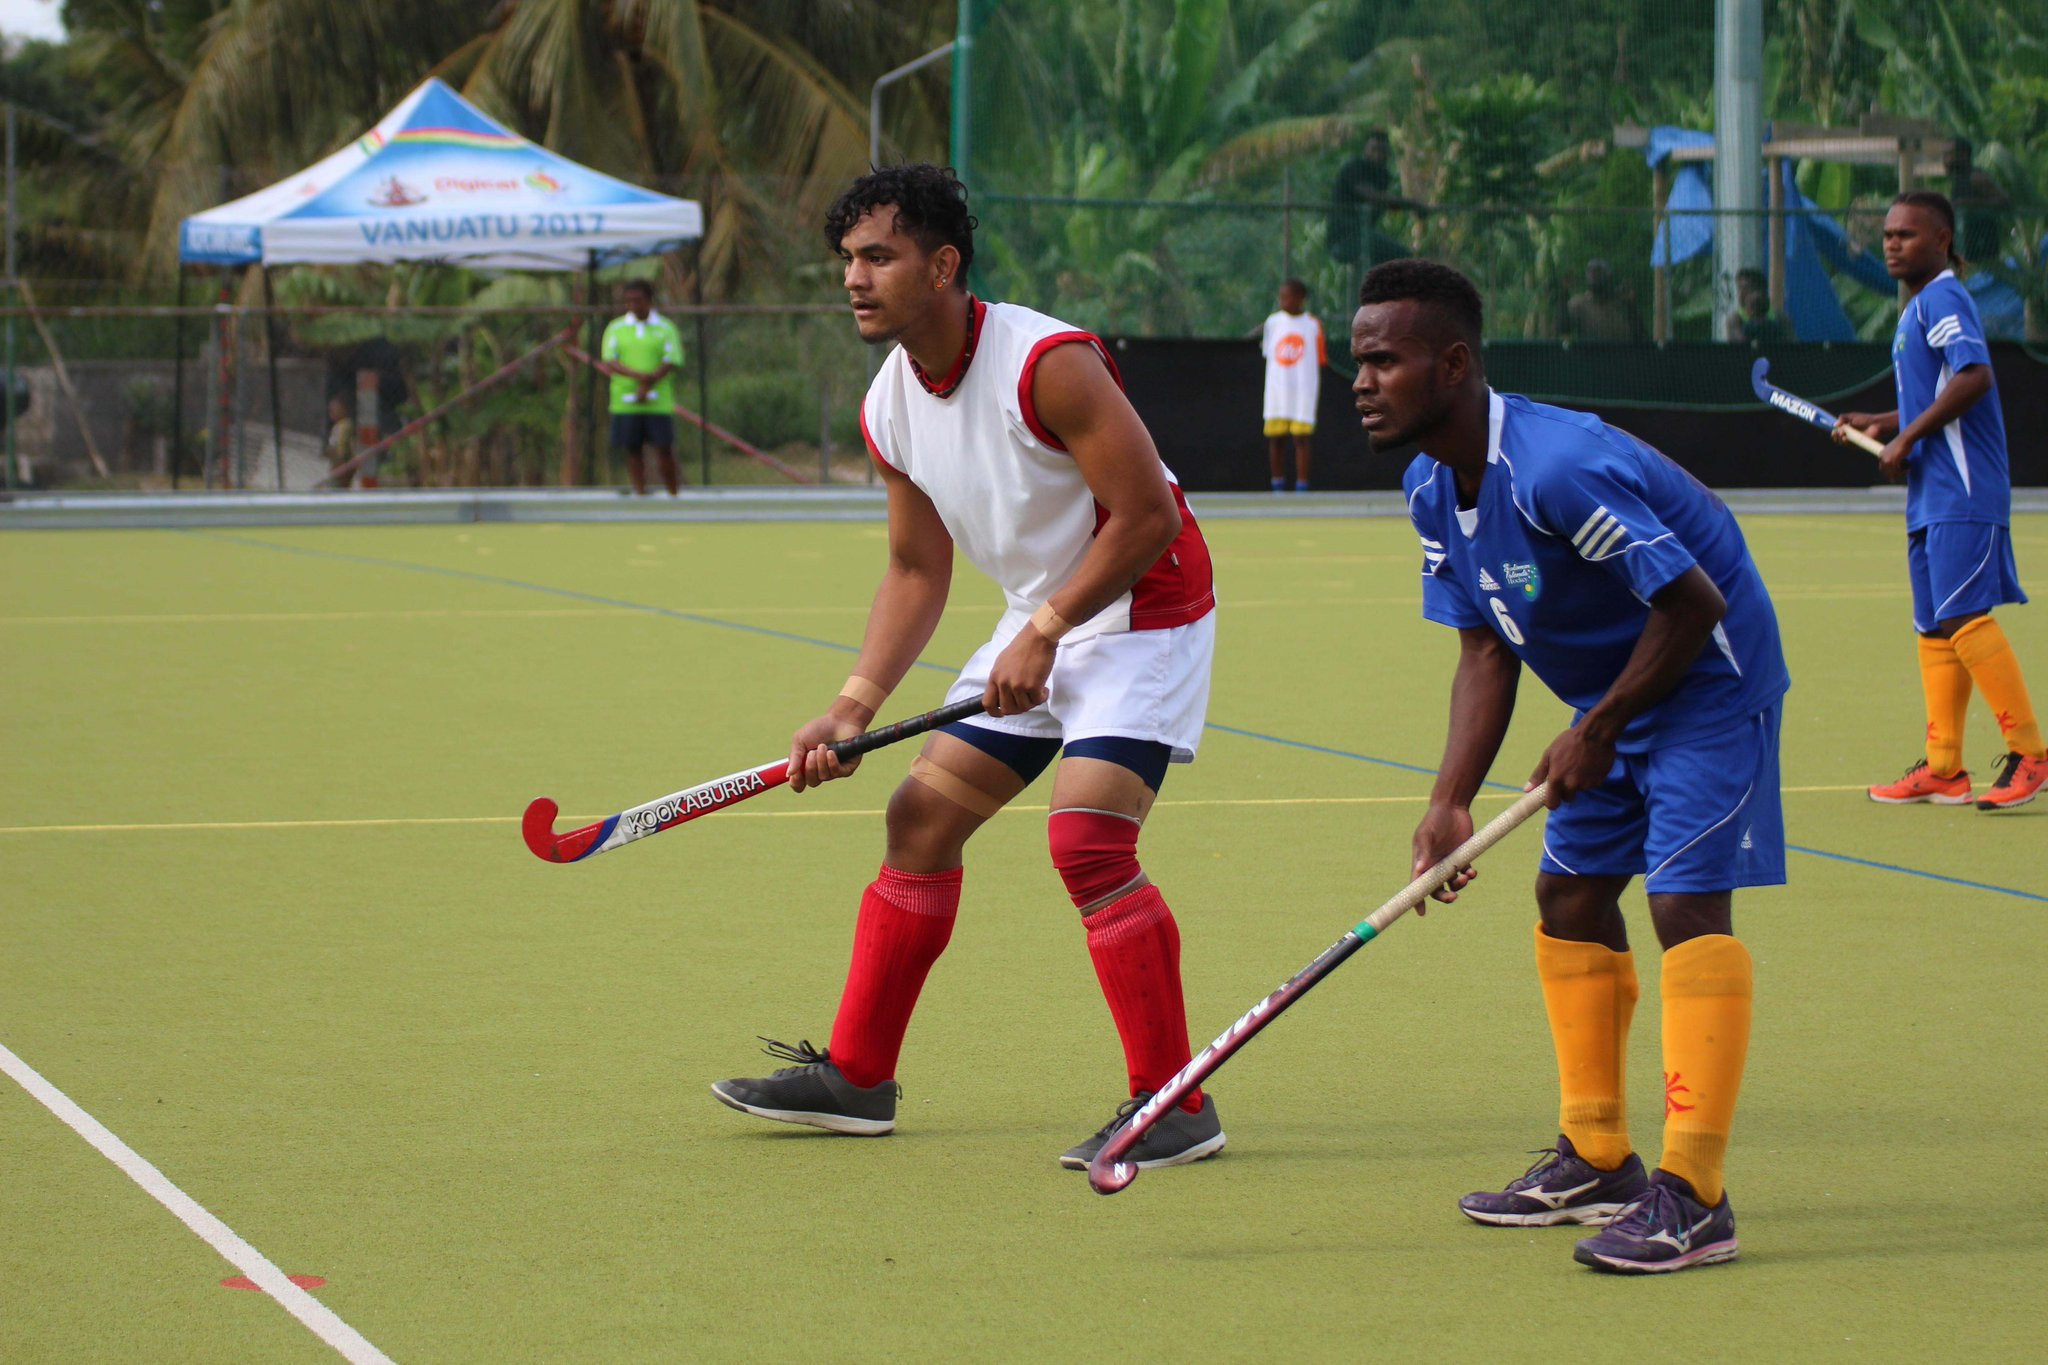 The FIH are hosting Hockey Series events around the world, like Port Vila earlier this month ©FIH/Twitter